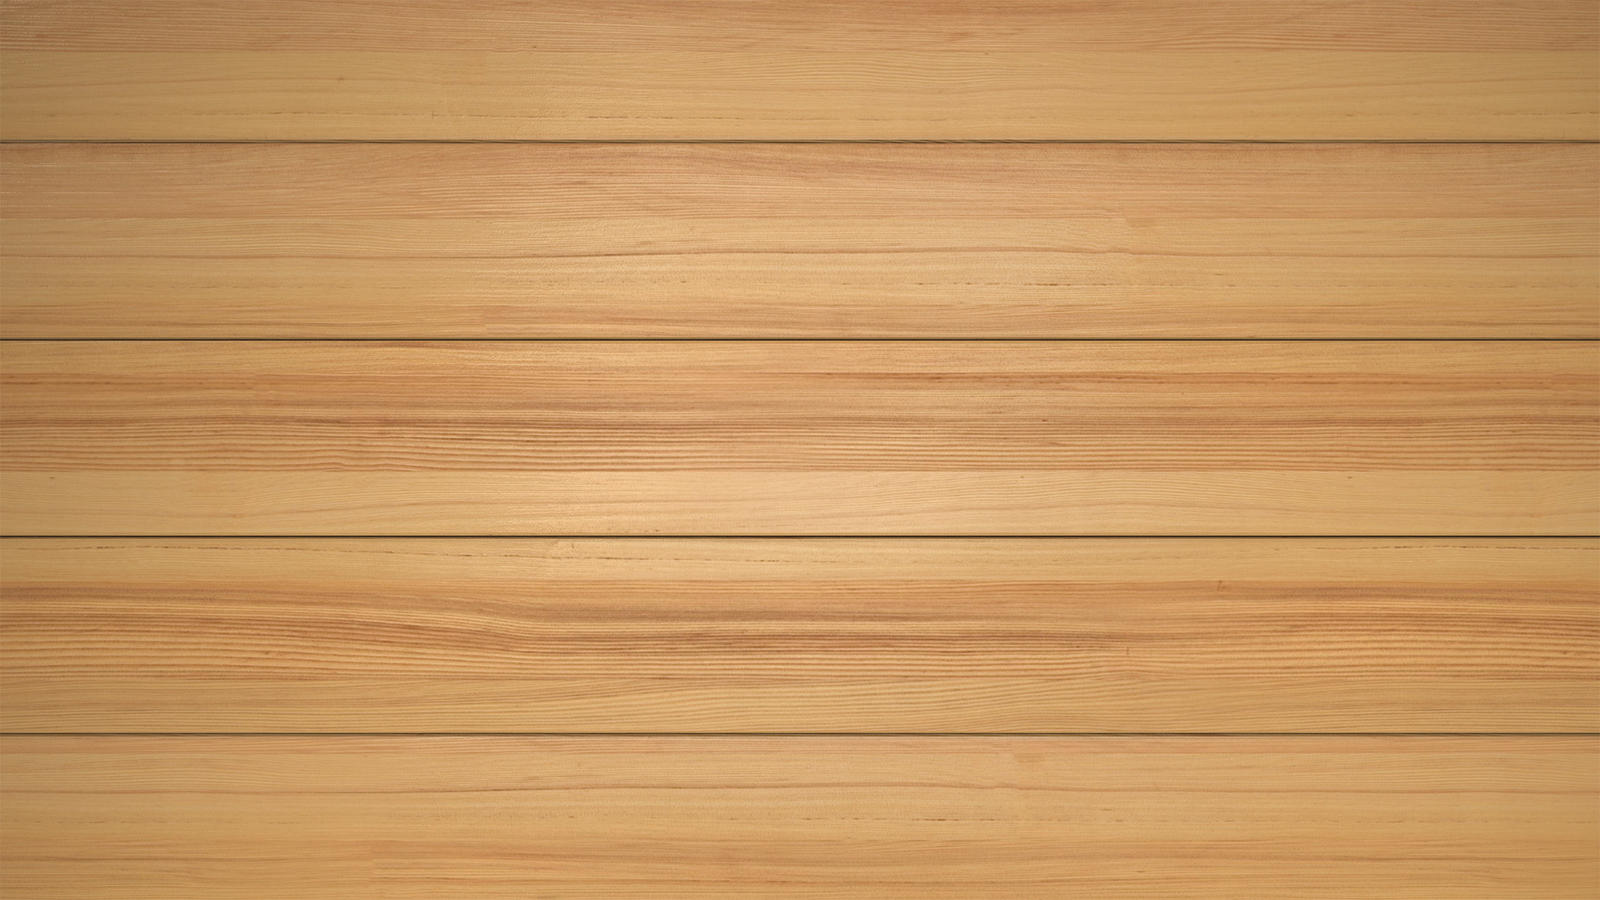 wood planks background images